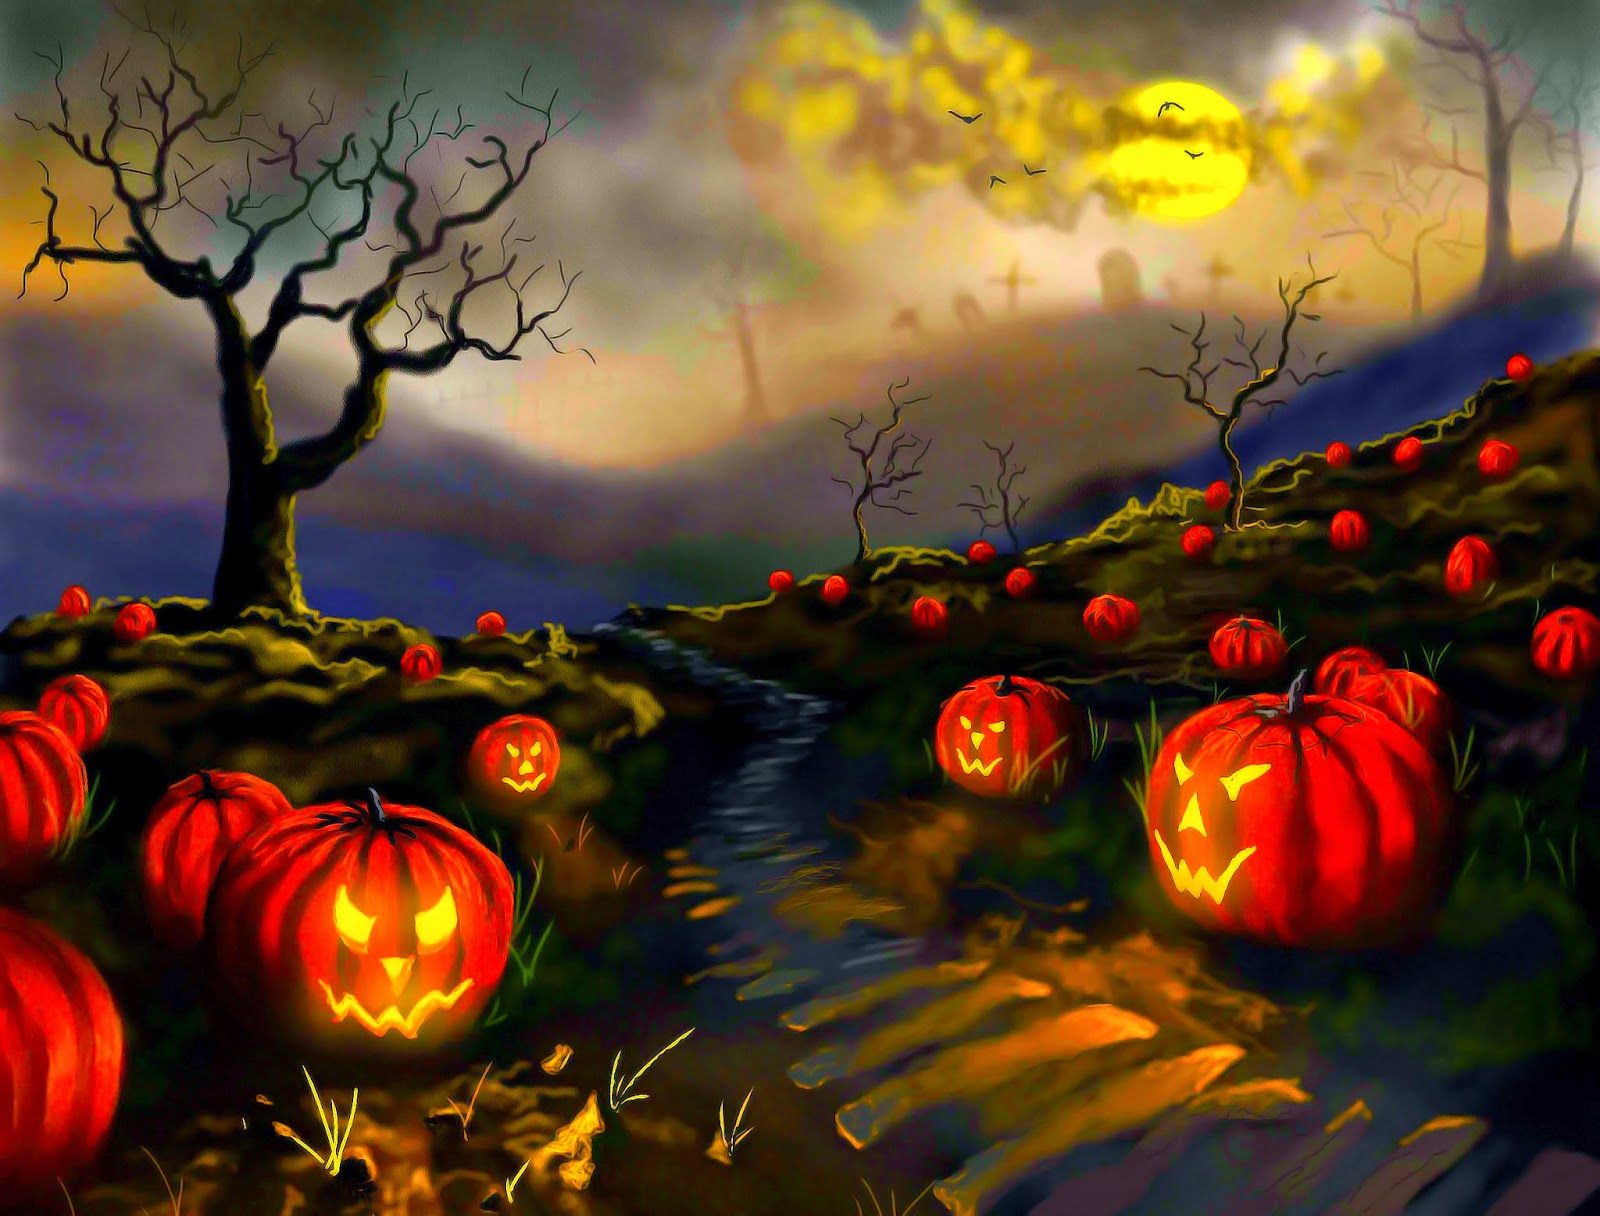 Scary-pumpkin-field-at-night-glowing-2500x1900.jpg